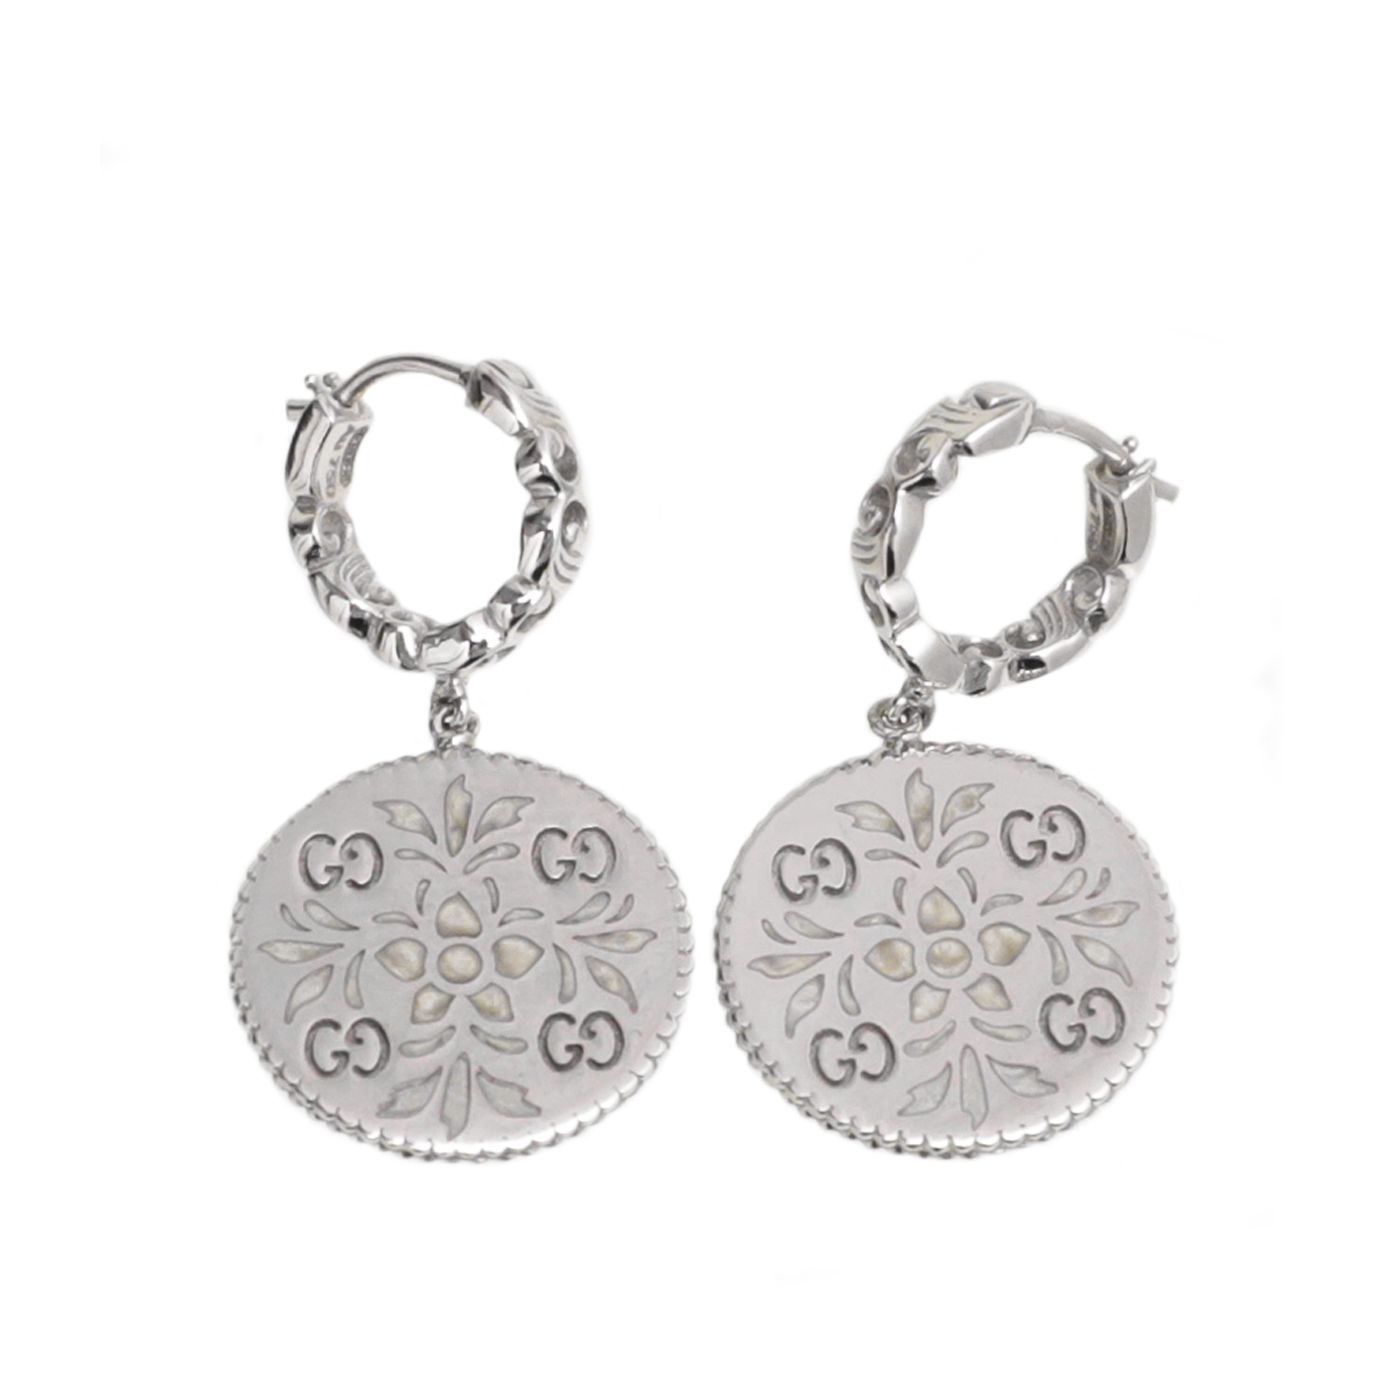 Gucci 18K White Gold GG Floral Hoop Drop Earrings